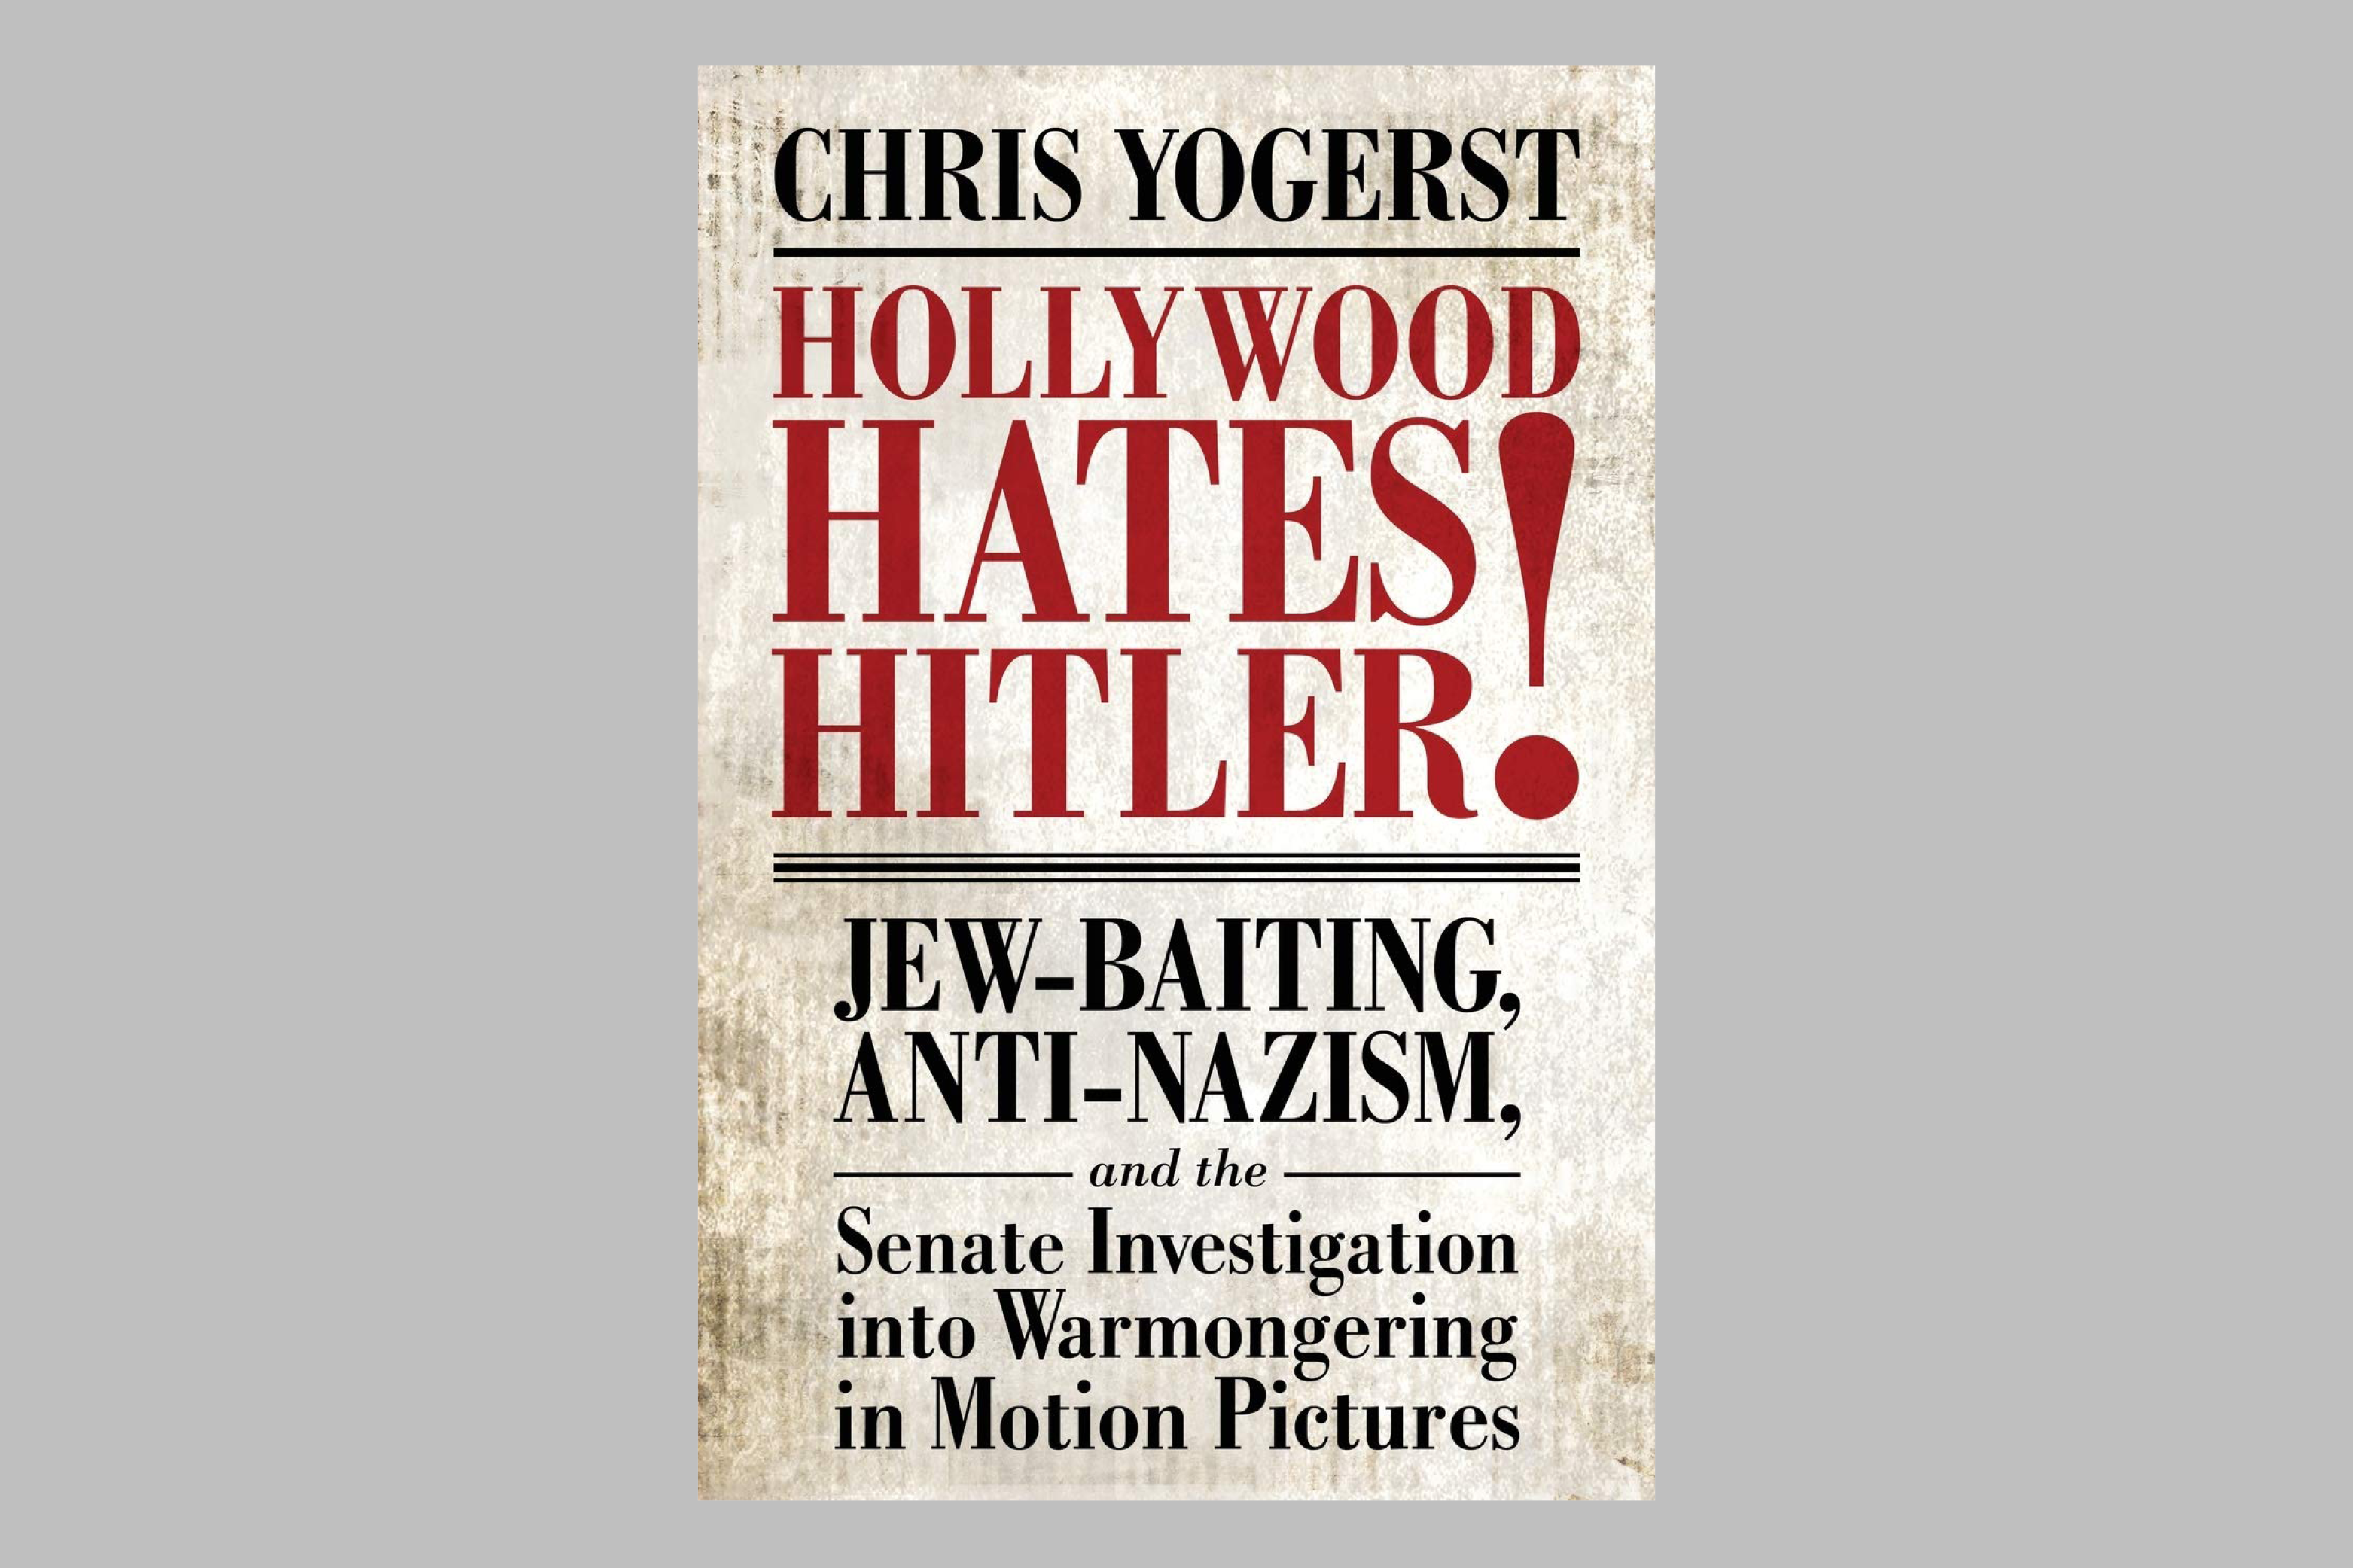 Hollywood Hates Hitler! book cover against gray background